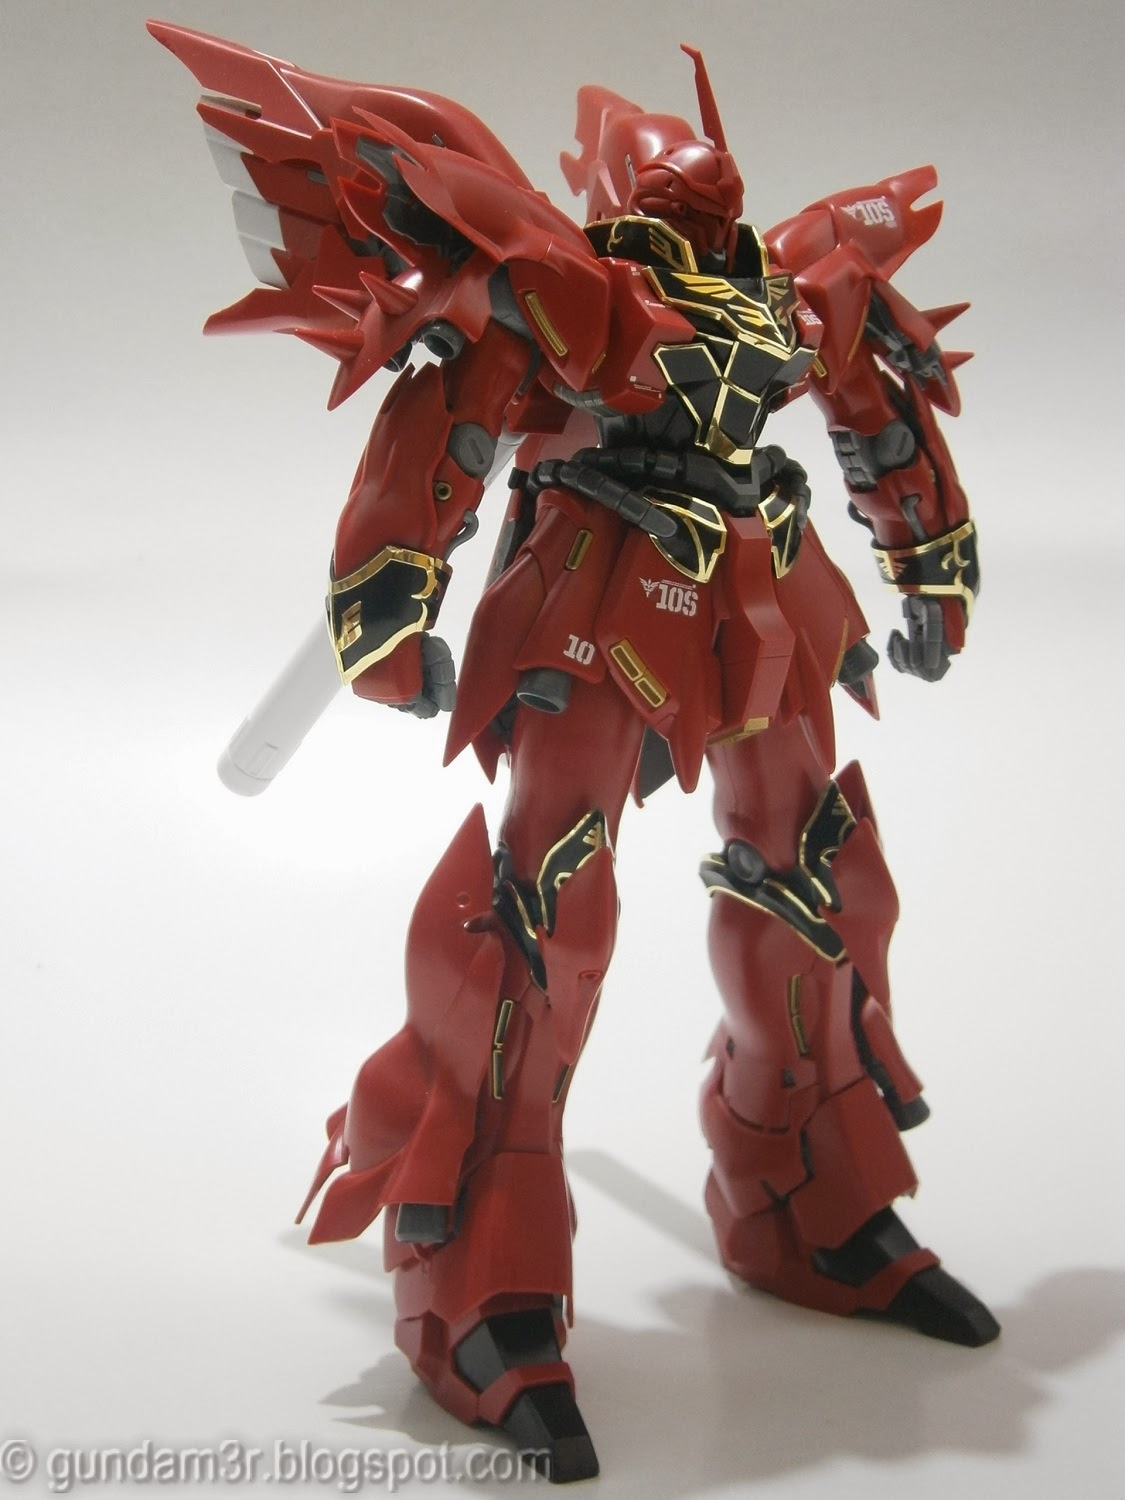 Sinanju Ver. Ka MG Review Part 1 - Gundam3R